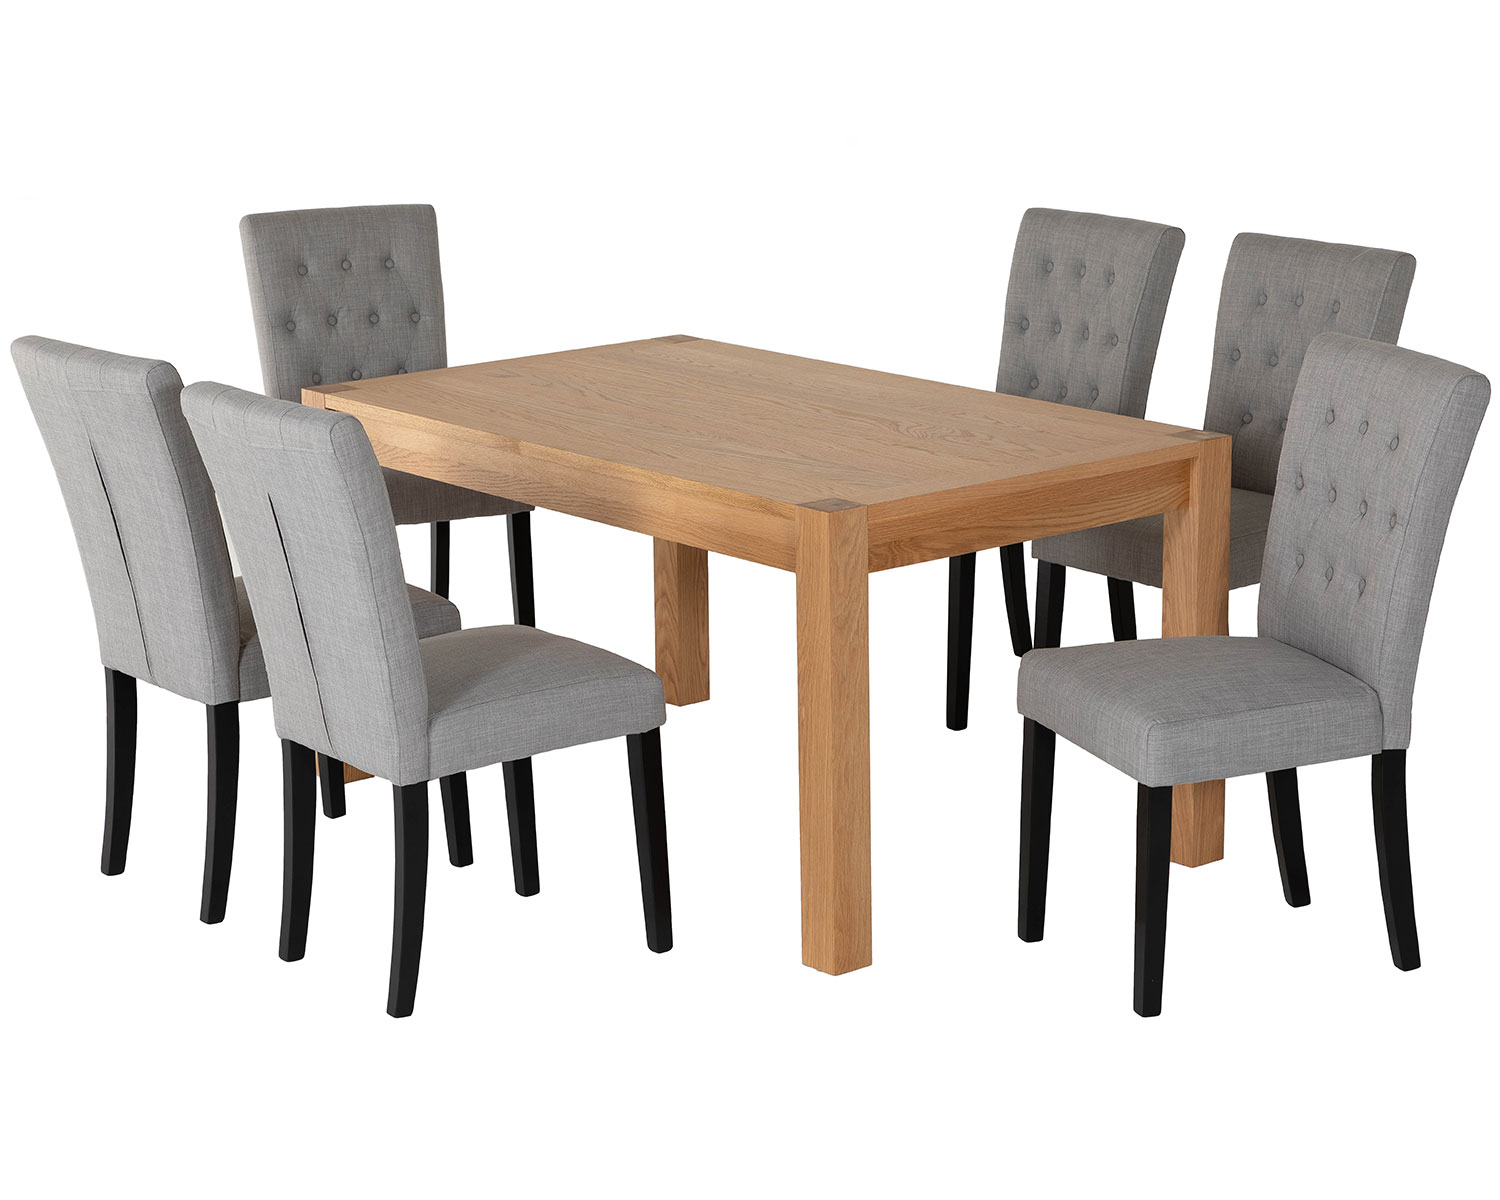 Rectangular Oak Dining Table And 6 Grey Linen Florence Dining Chairs With Black Legs